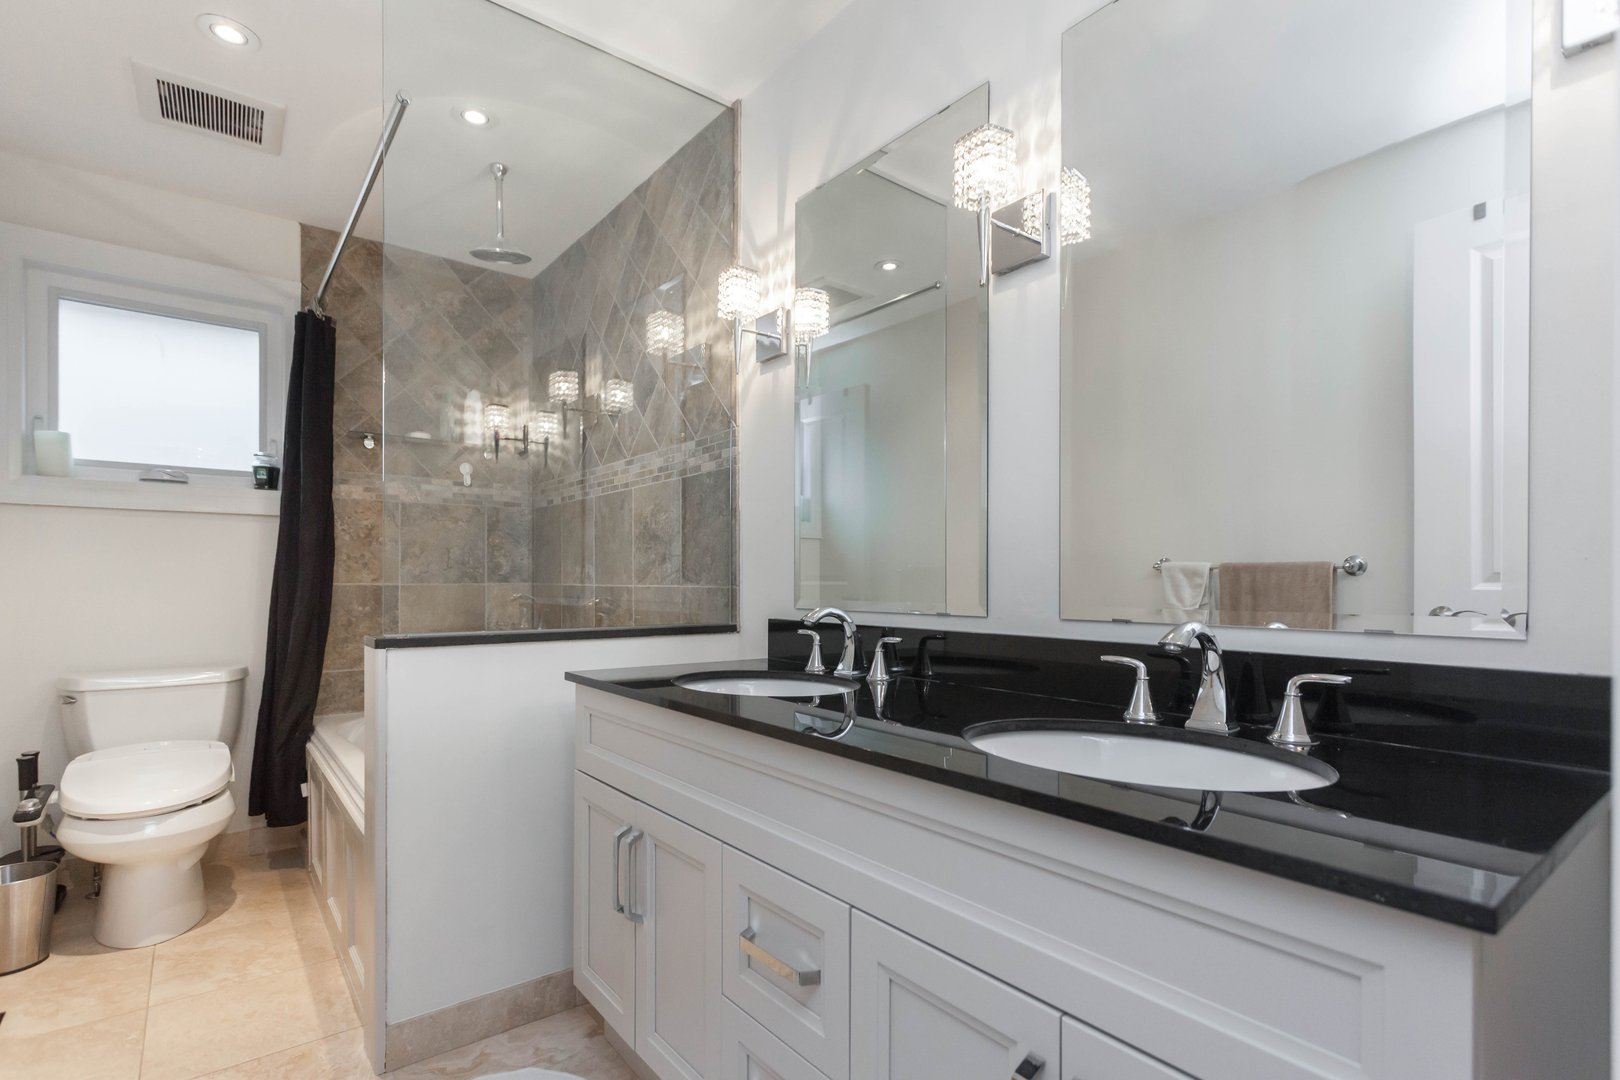 House for rent at 84 Laurel Avenue, Etobicoke, ON. This is the bathroom with natural light and tile floor.